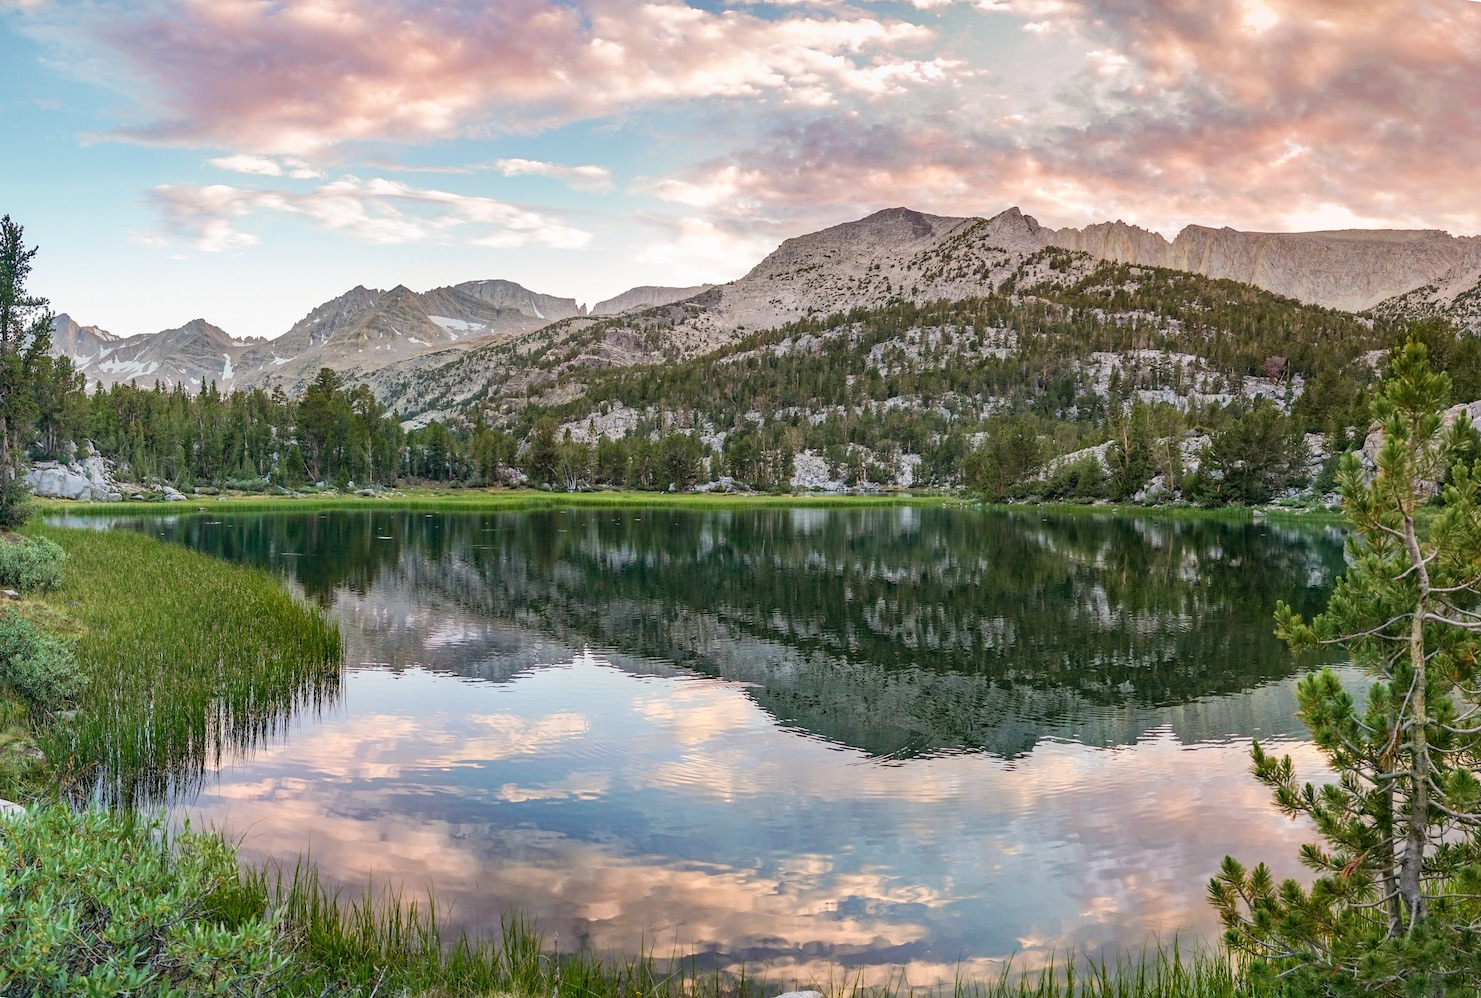 A sunset sky reflects in an alpine lake surrounded by pine trees and mountains in Sequoia and Kings Canyon National Park